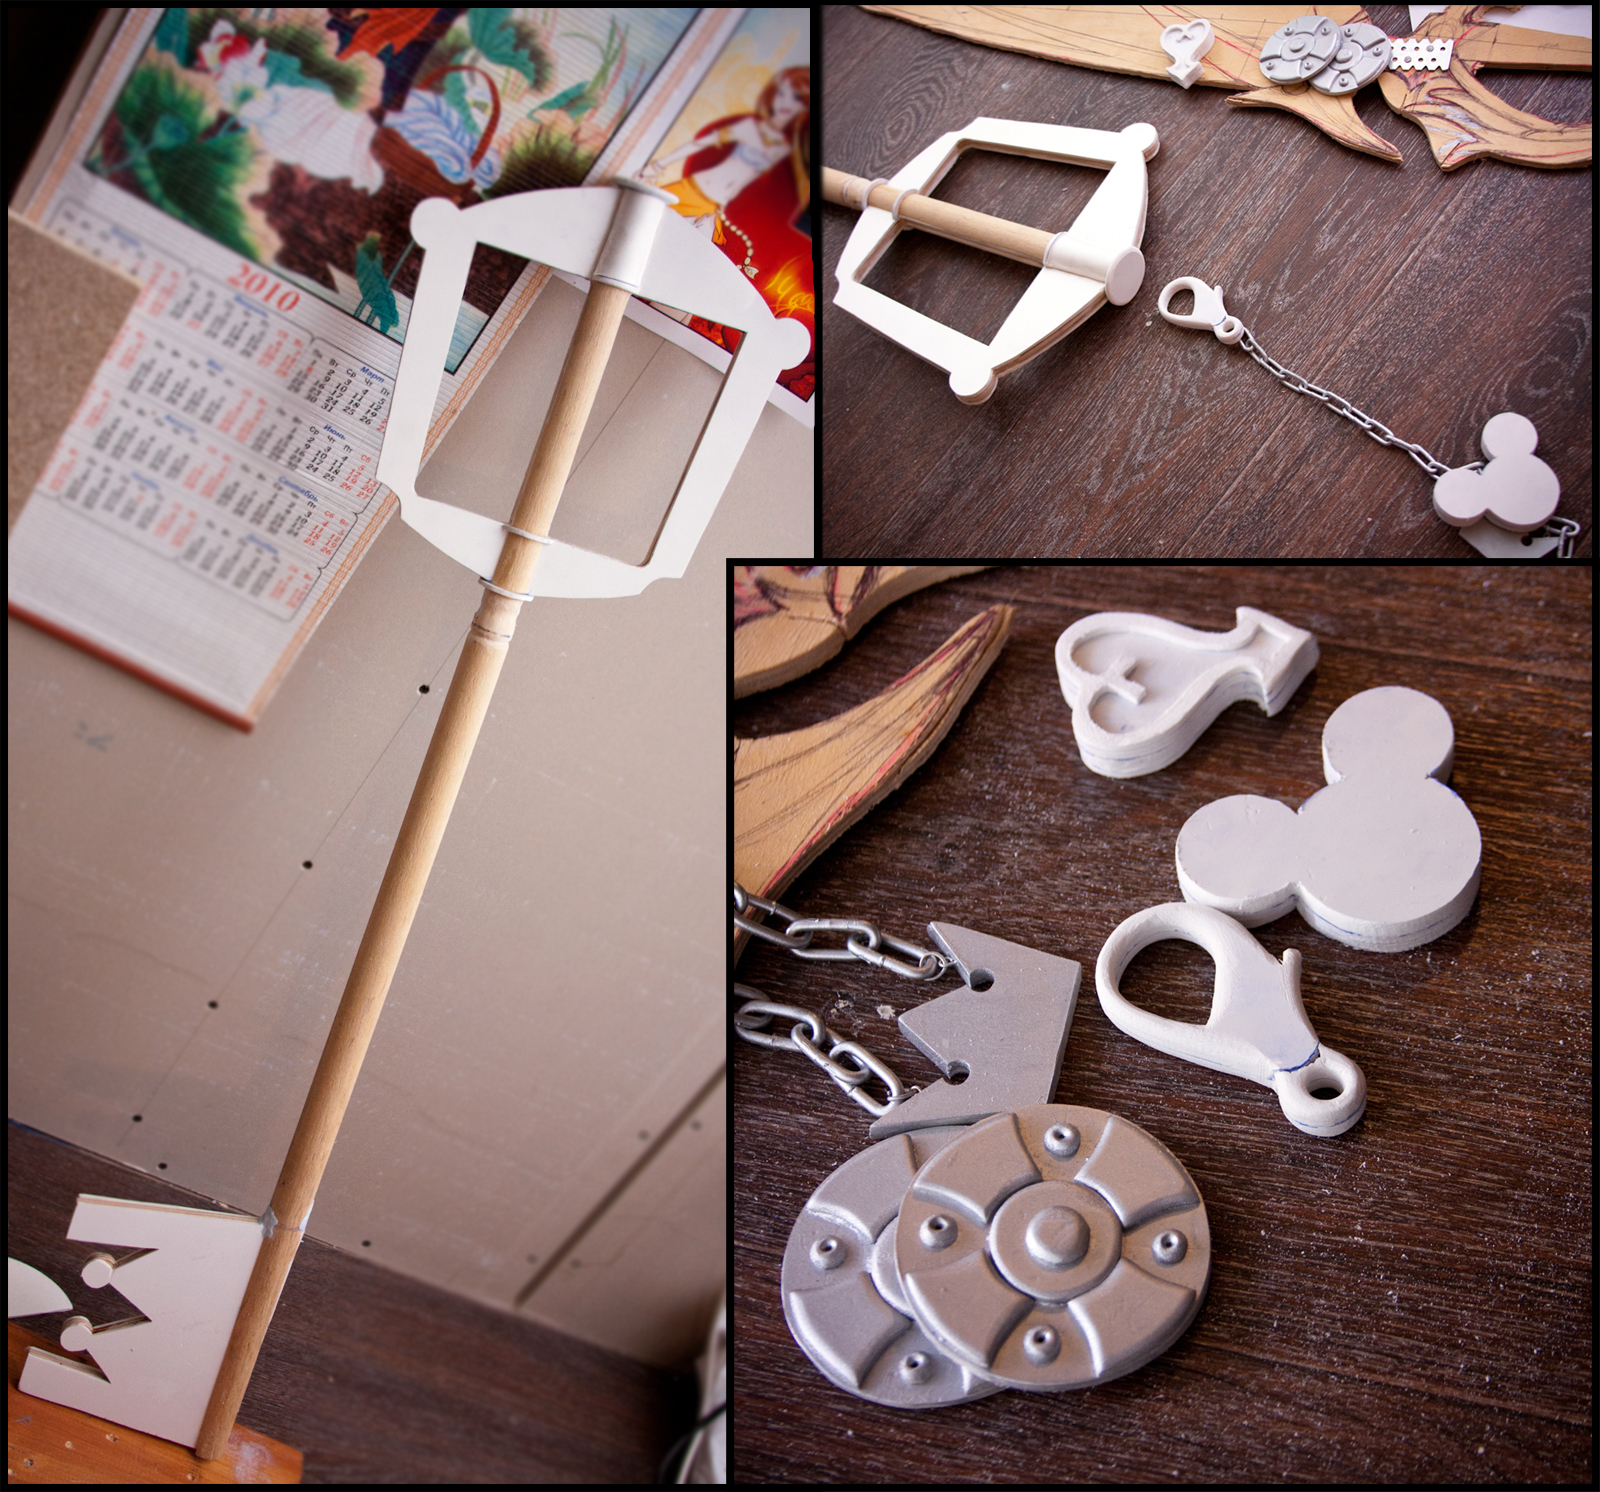 Kingdom hearts - Sora Keyblade 1 by RubeeAmadare